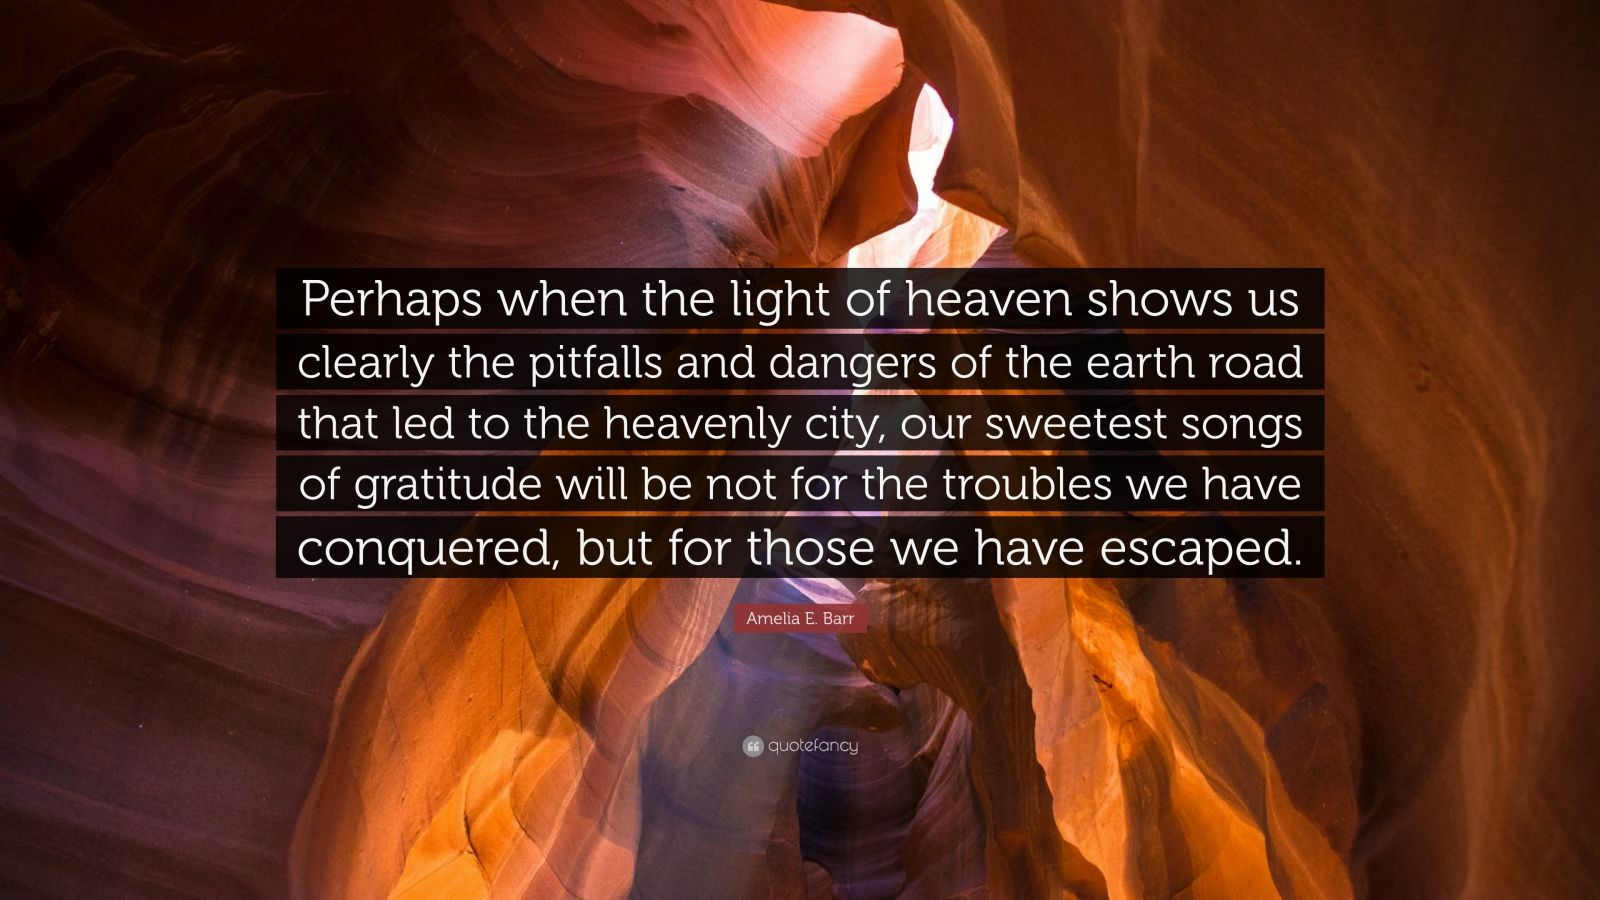 """Amelia E. Barr Quote: """"Perhaps when the light of heaven shows us clearly the pitfalls and dangers of the earth road that led to the heavenly city, our sweetest songs of gratitude will be not for the troubles we have conquered, but for those we have escaped."""""""